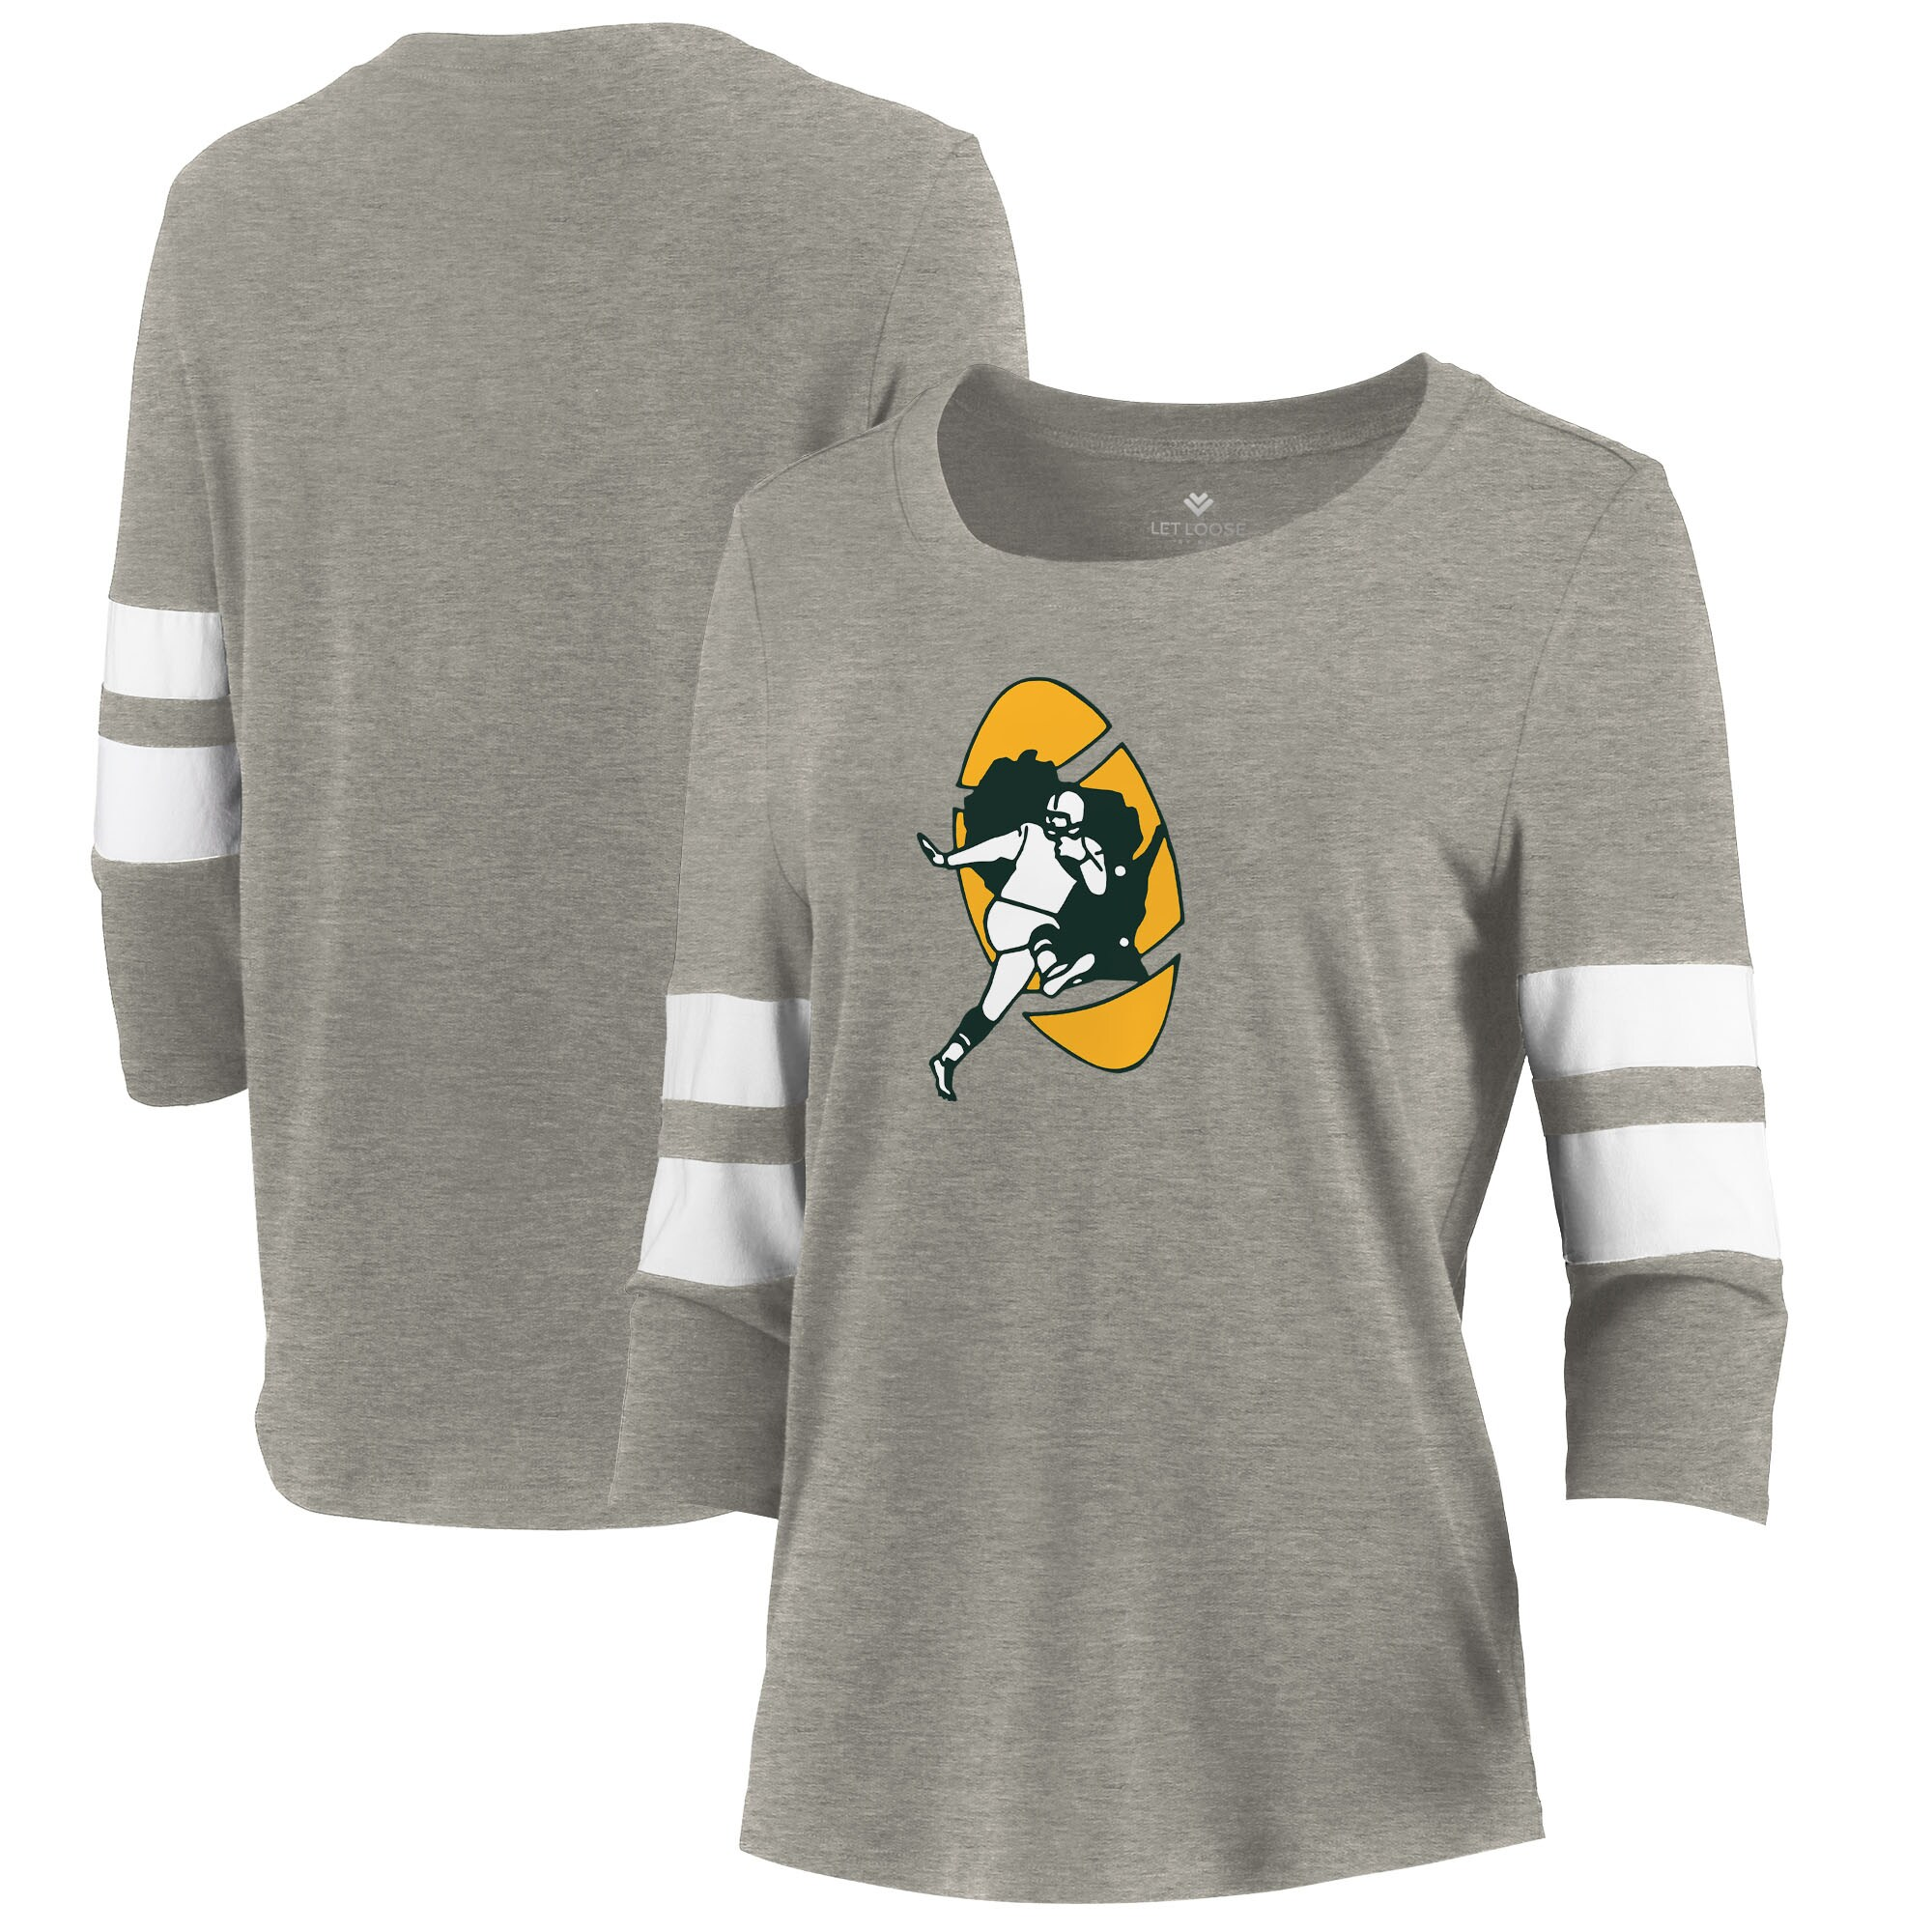 Green Bay Packers Let Loose by RNL Women's Team Logo Stripe Tri-Blend 3/4 Sleeve T-Shirt - Ash